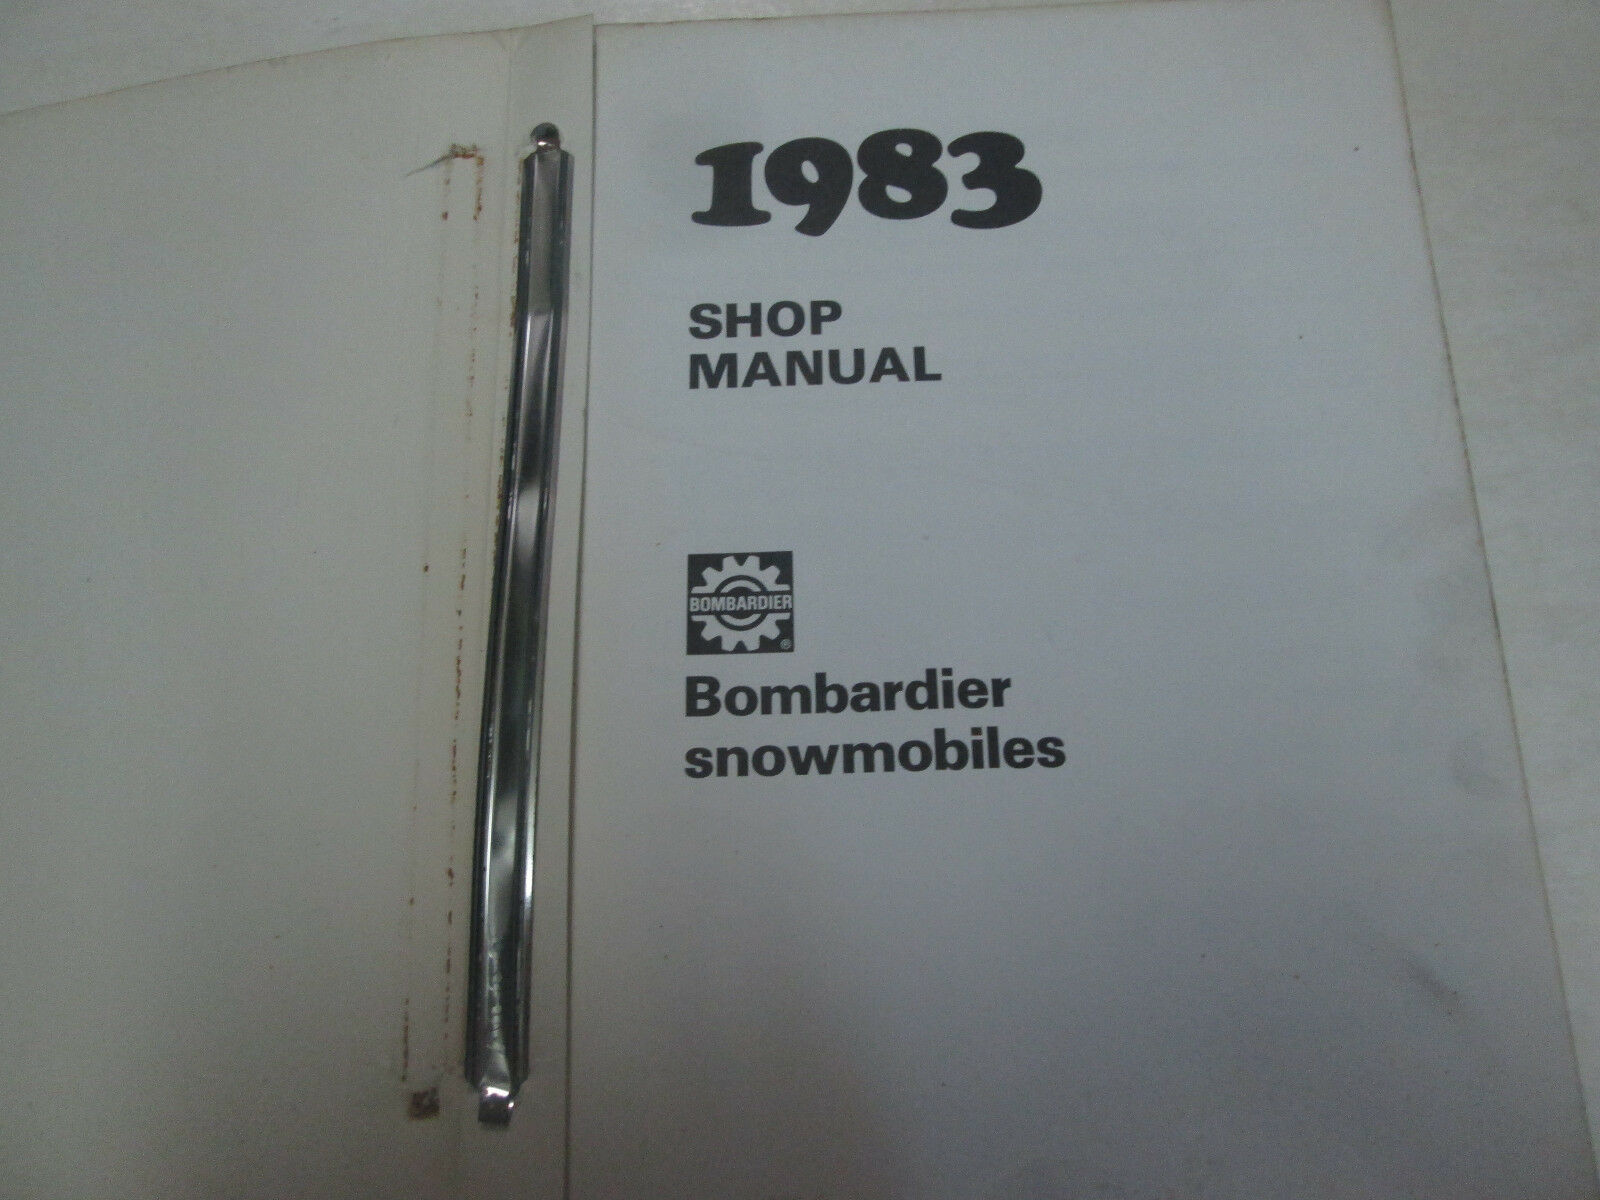 1983 Bombardier Schneemobil Service Reparatur Shop Manuell Fabrik OEM Buch Used